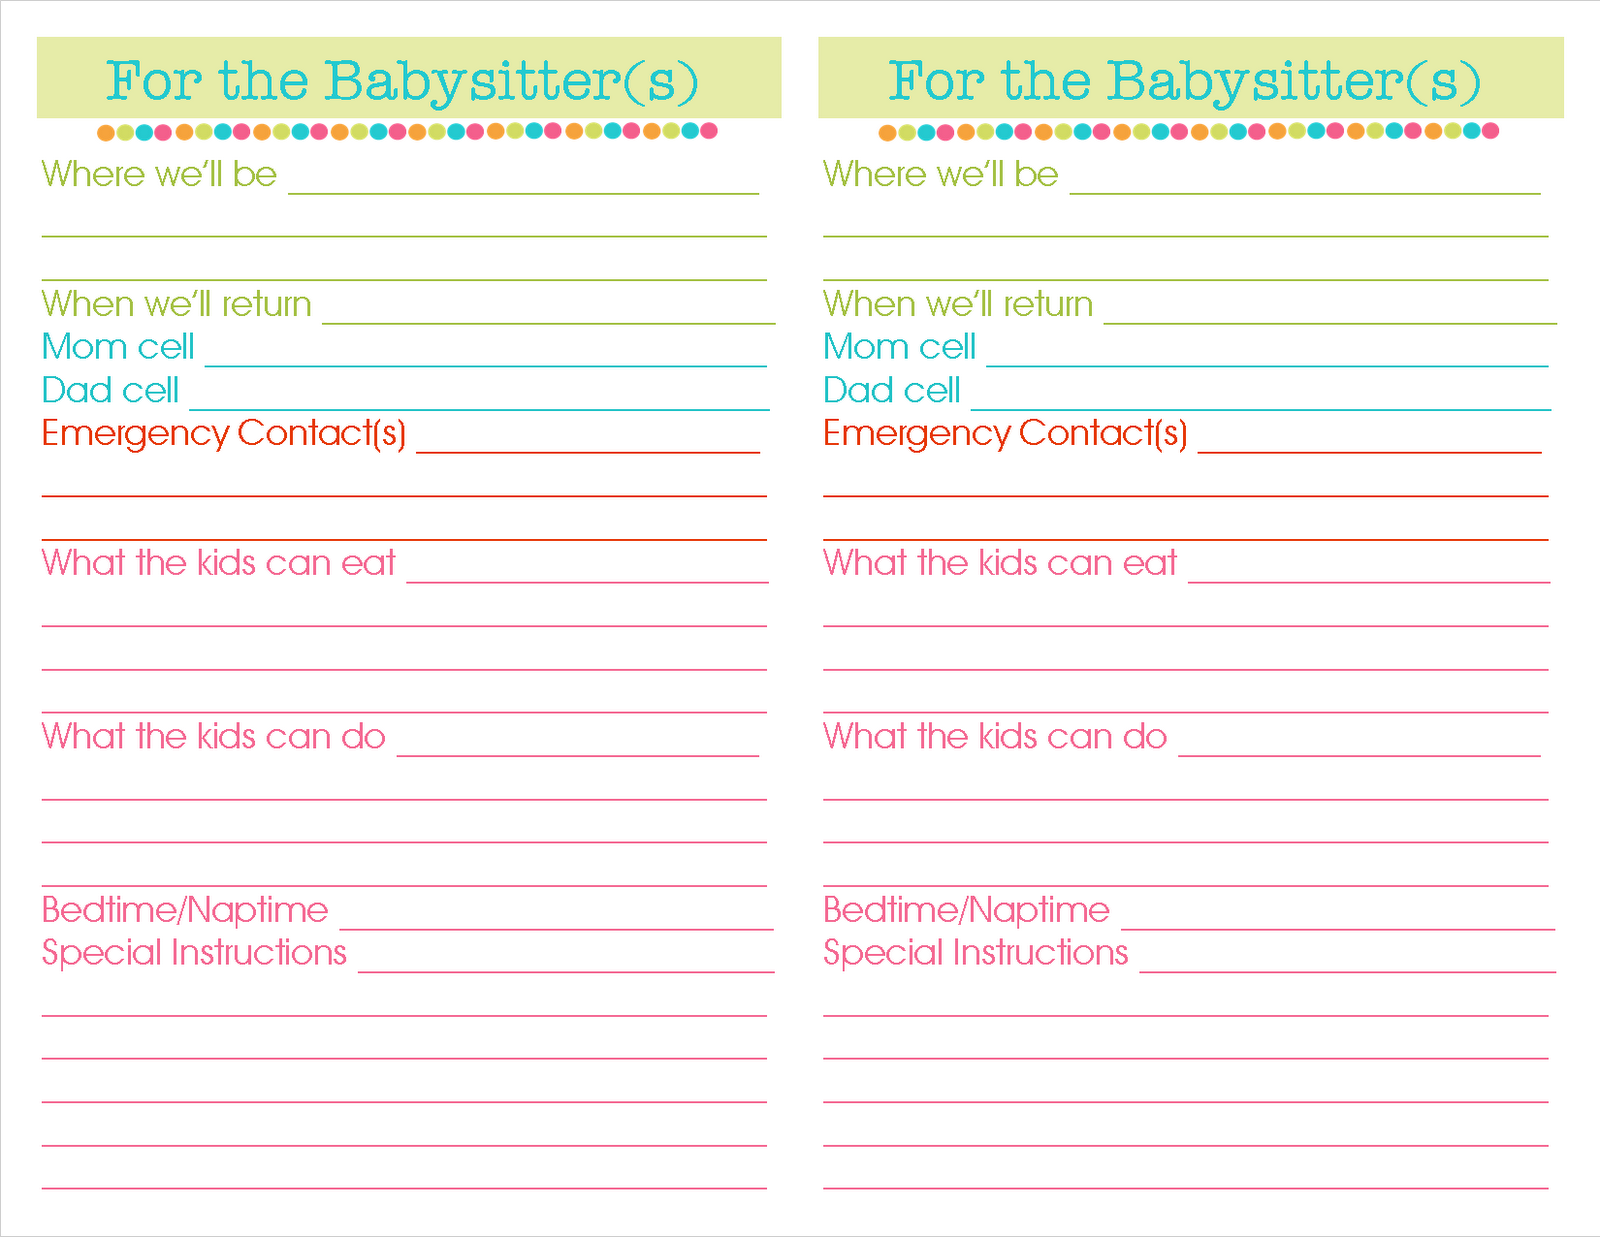 babysitter printables related keywords suggestions babysitter print babysitting templates printable information